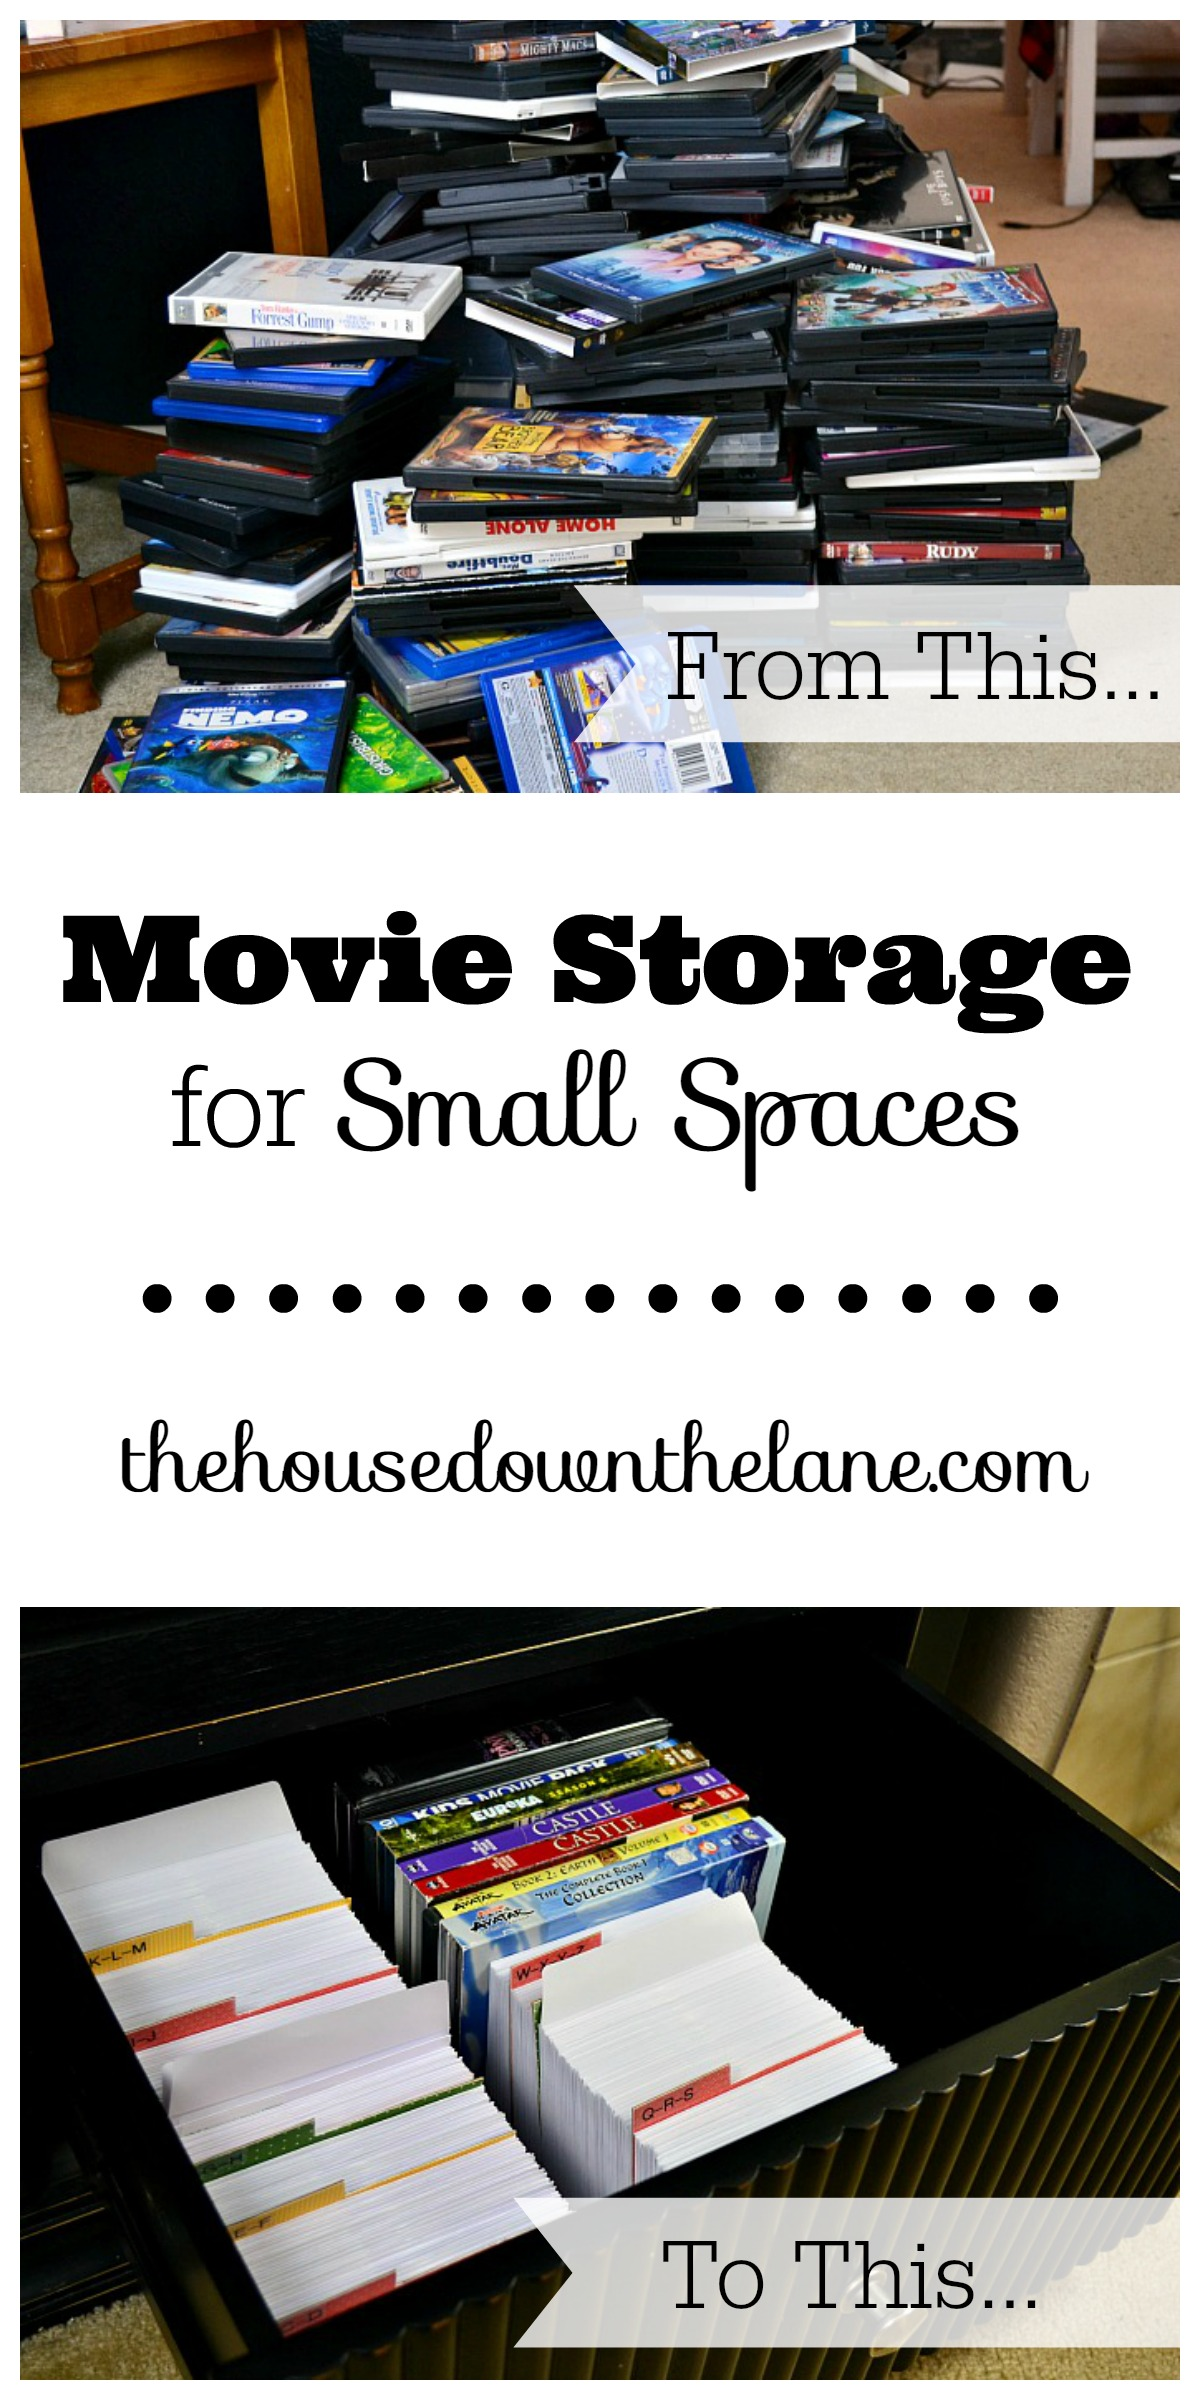 This DIY Movie Storage for Small Spaces project is a little time intensive but makes up for it in space gained!   The House Down the Lane